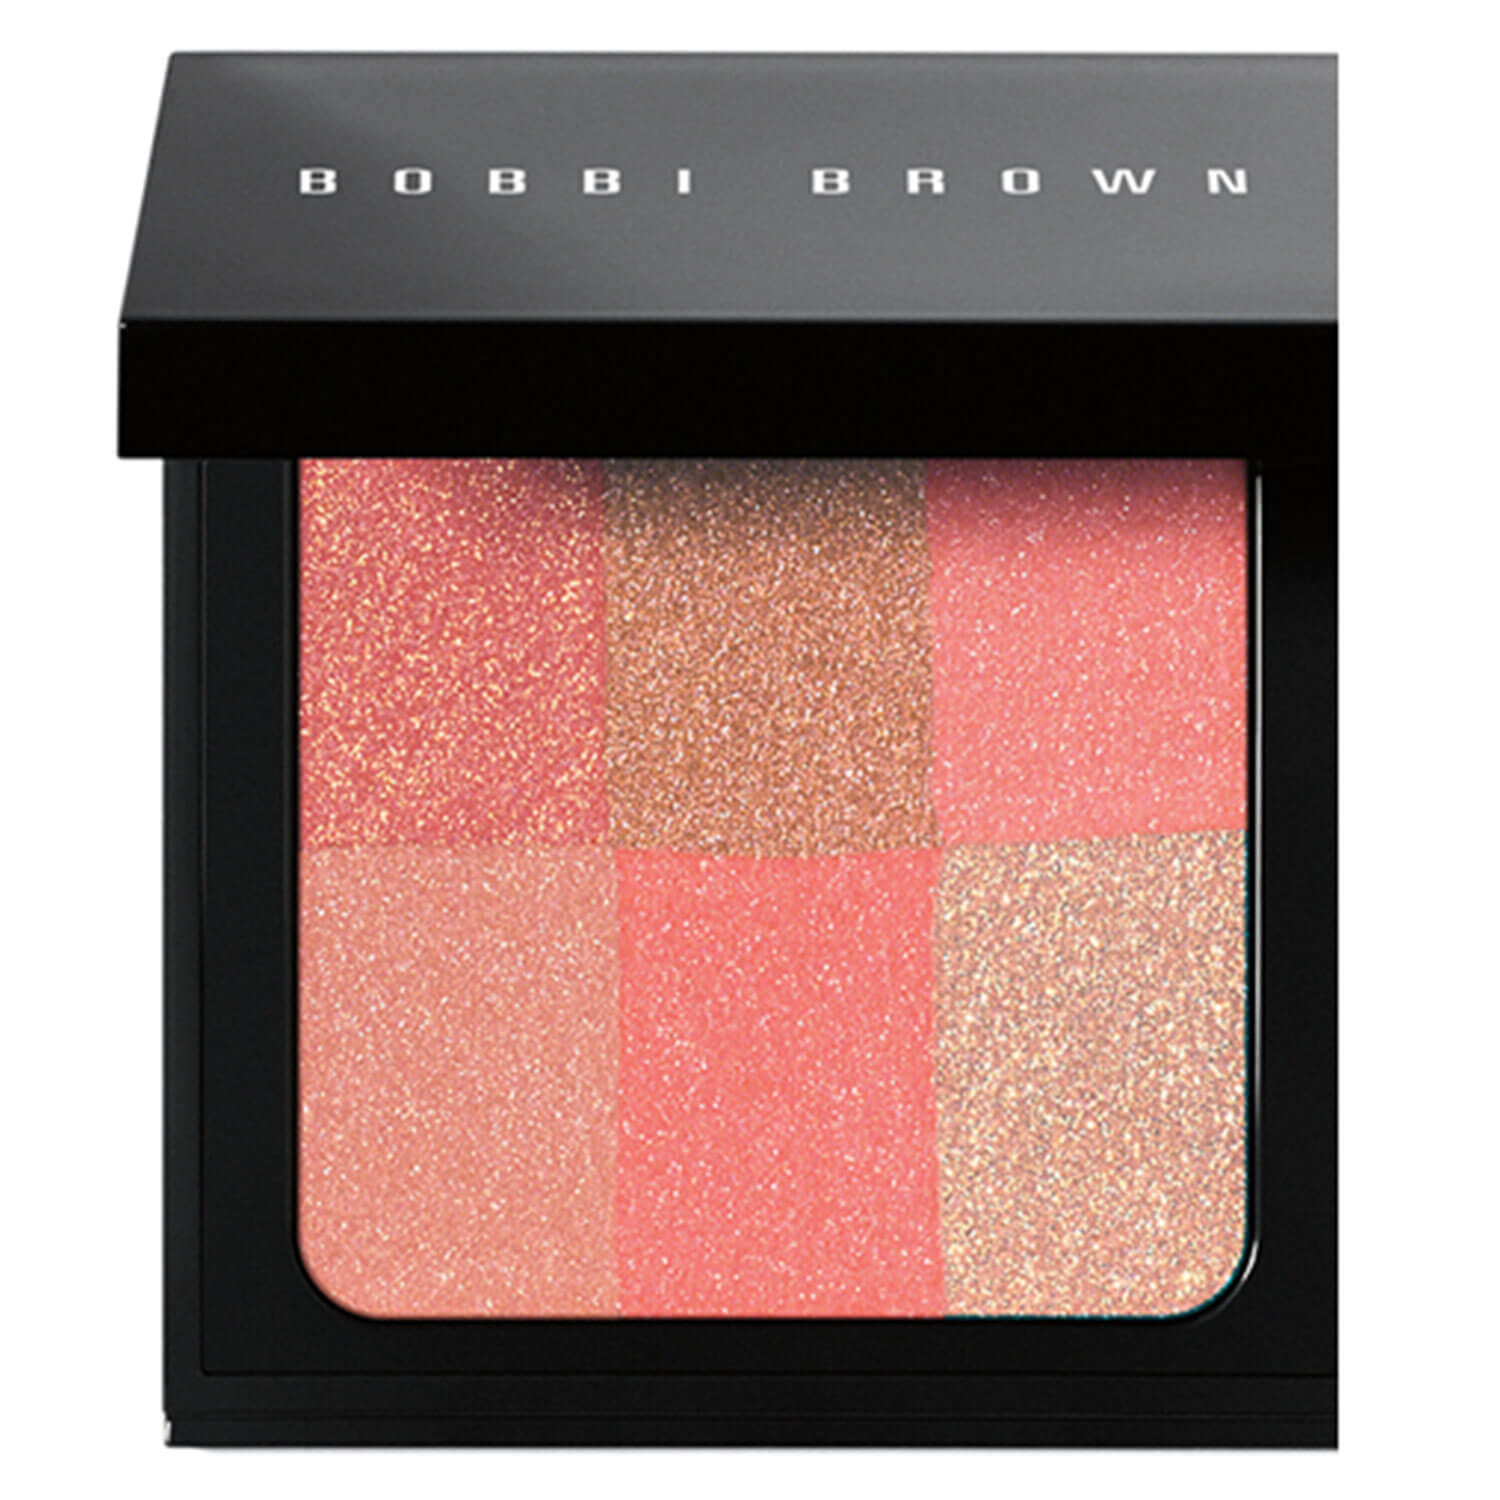 BB Blush - Brightening Brick Coral